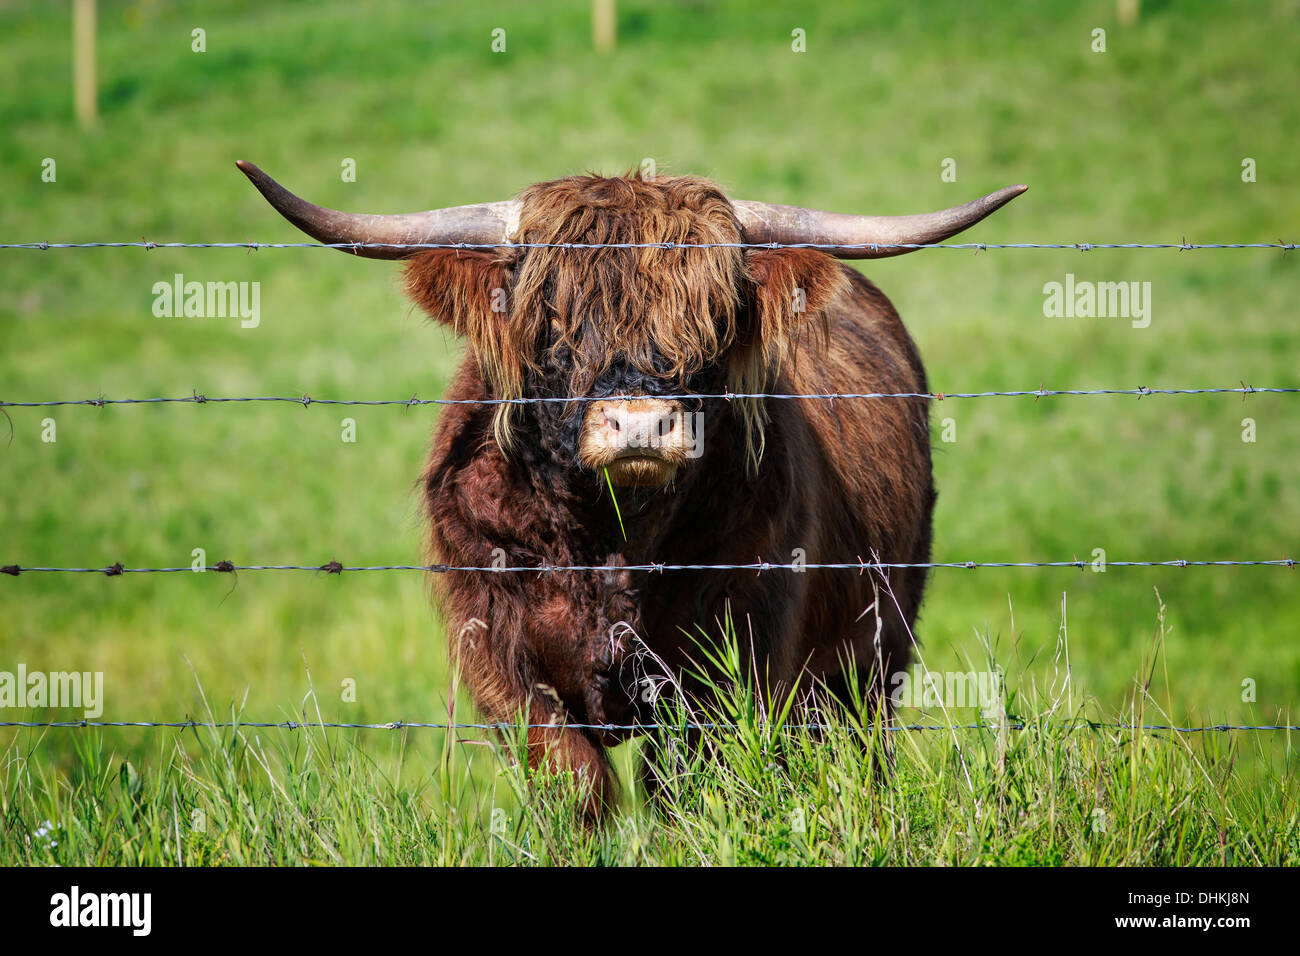 Portrait of Highland Cattle behind barbed-wire, Kananaskis Country, Alberta, Canada - Stock Image